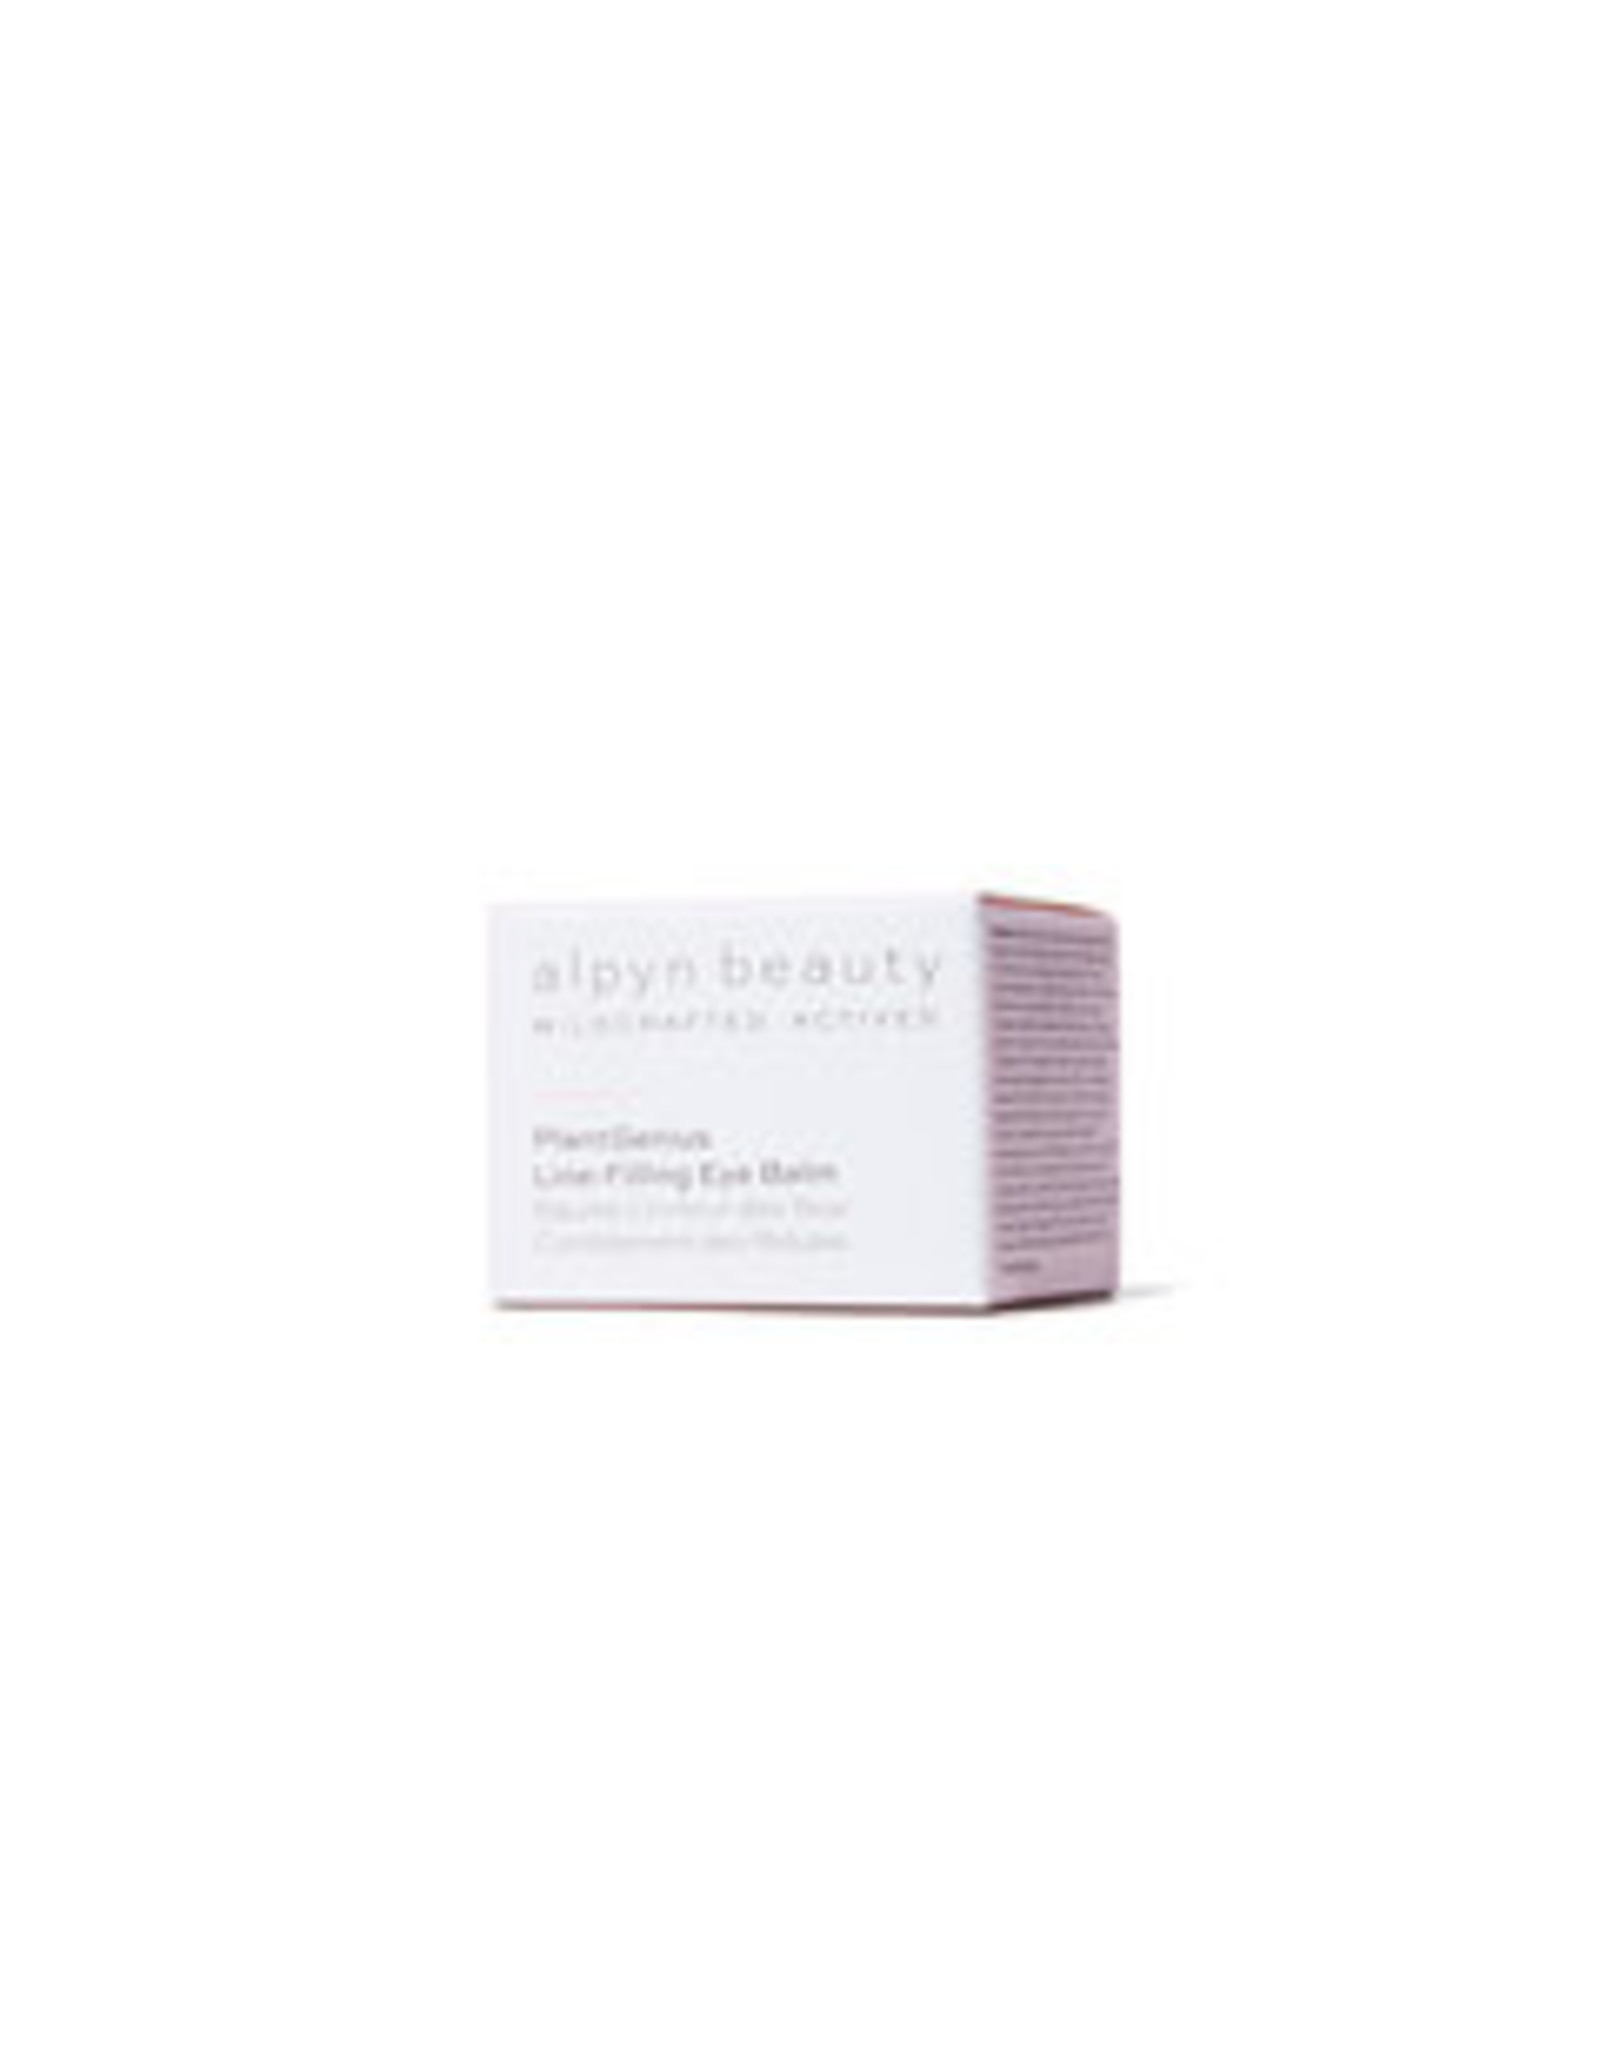 Alpyn Beauty Alpyn Beauty PlantGenius Line-Filling Eye Balm